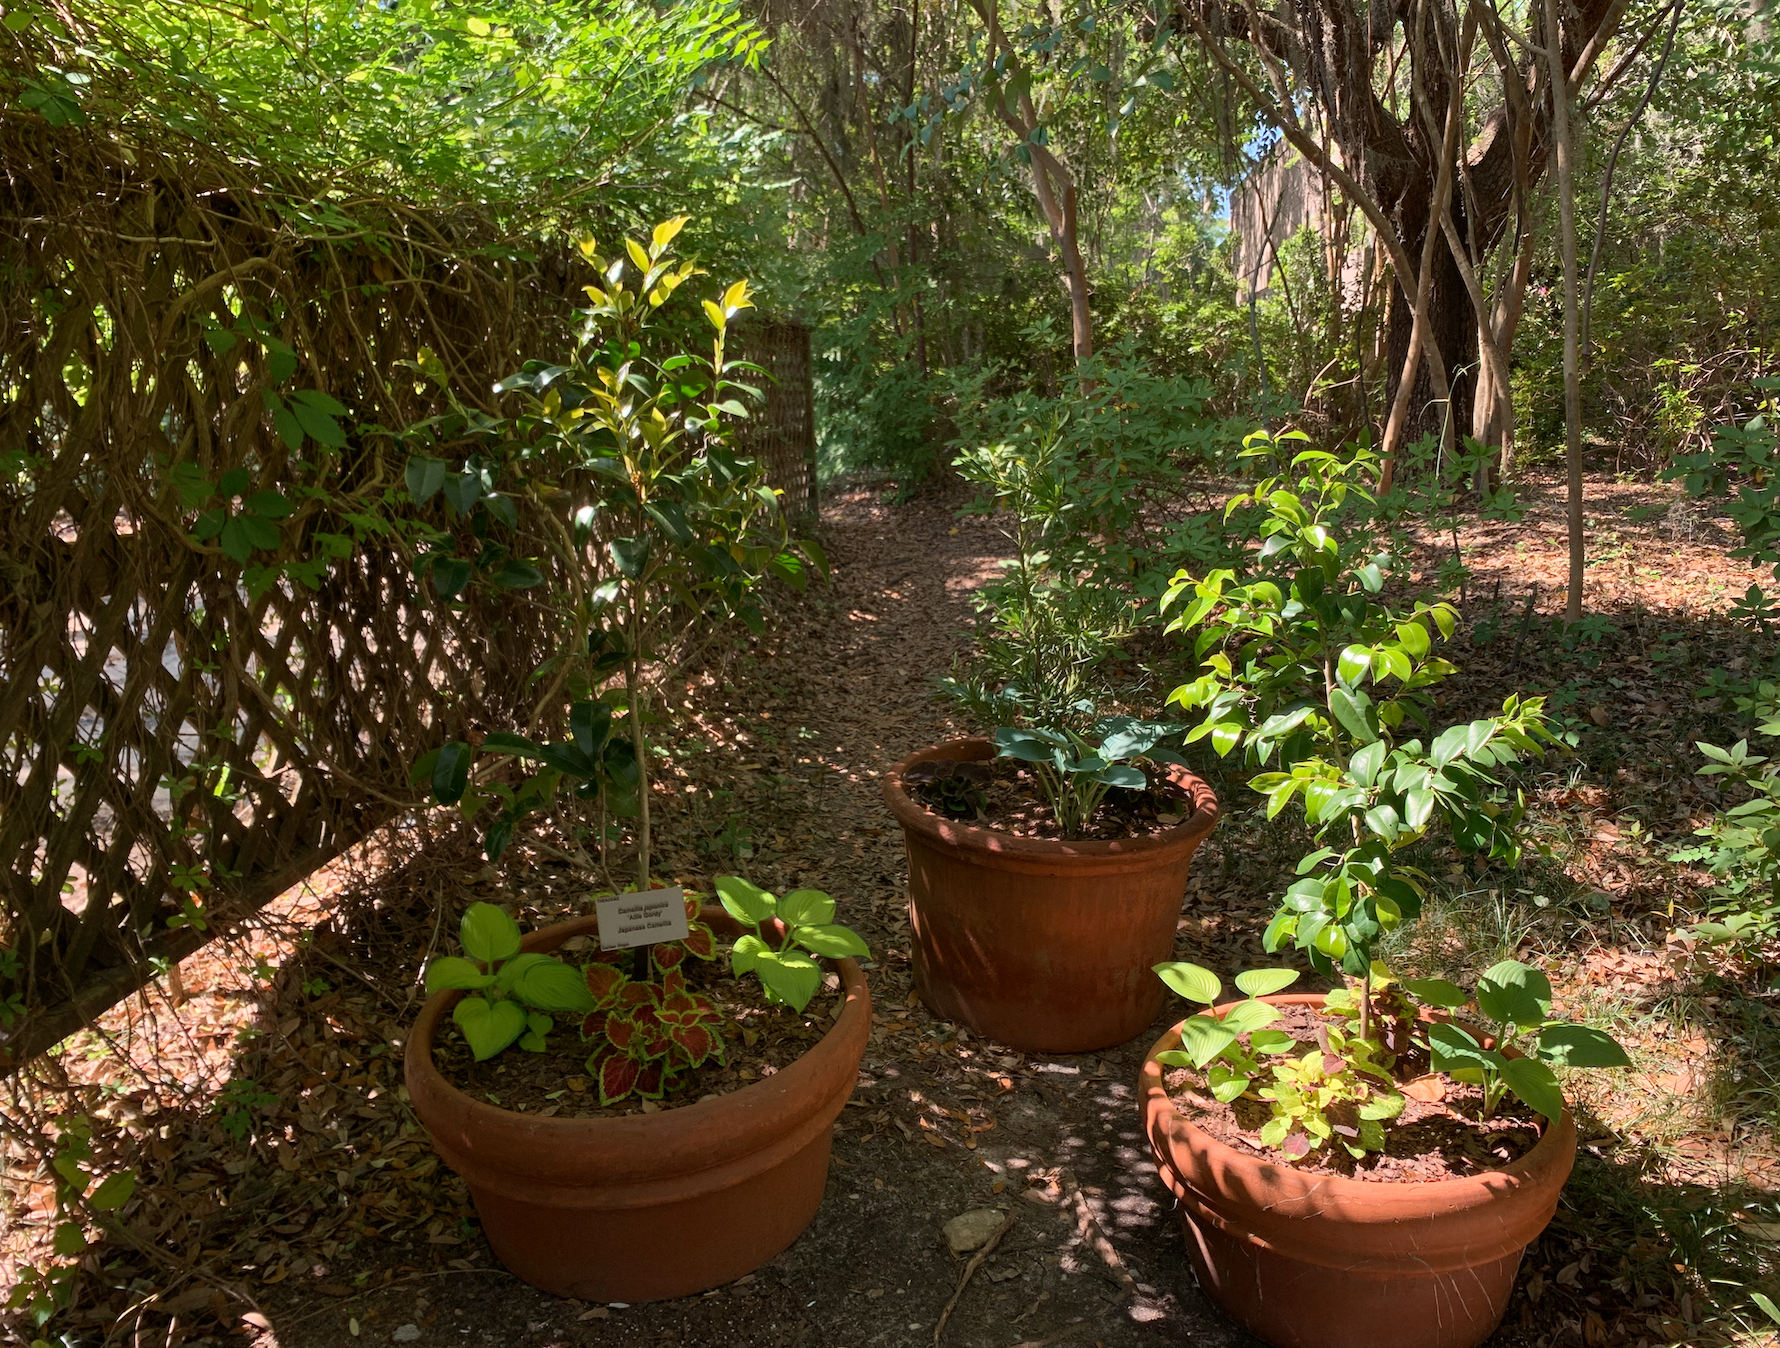 Three orange ceramic pots, holding 5 plants each, sit beside a fence. There are four small plants and one tall tree per pot.